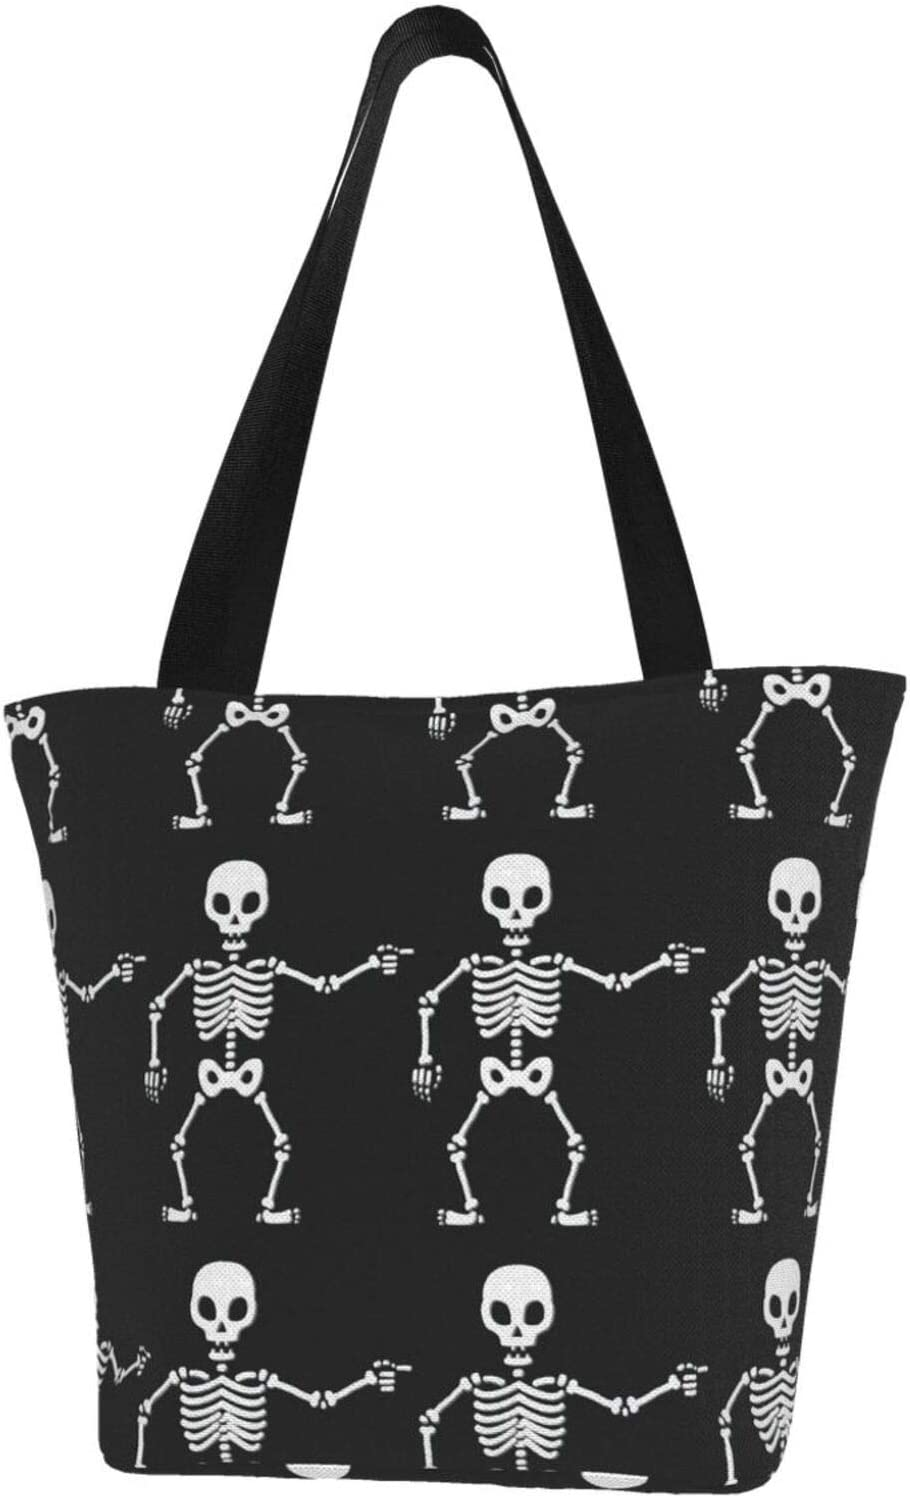 Now on sale AKLID Skull Bone Extra Large Water Bag Resistant for Canvas Now free shipping Tote